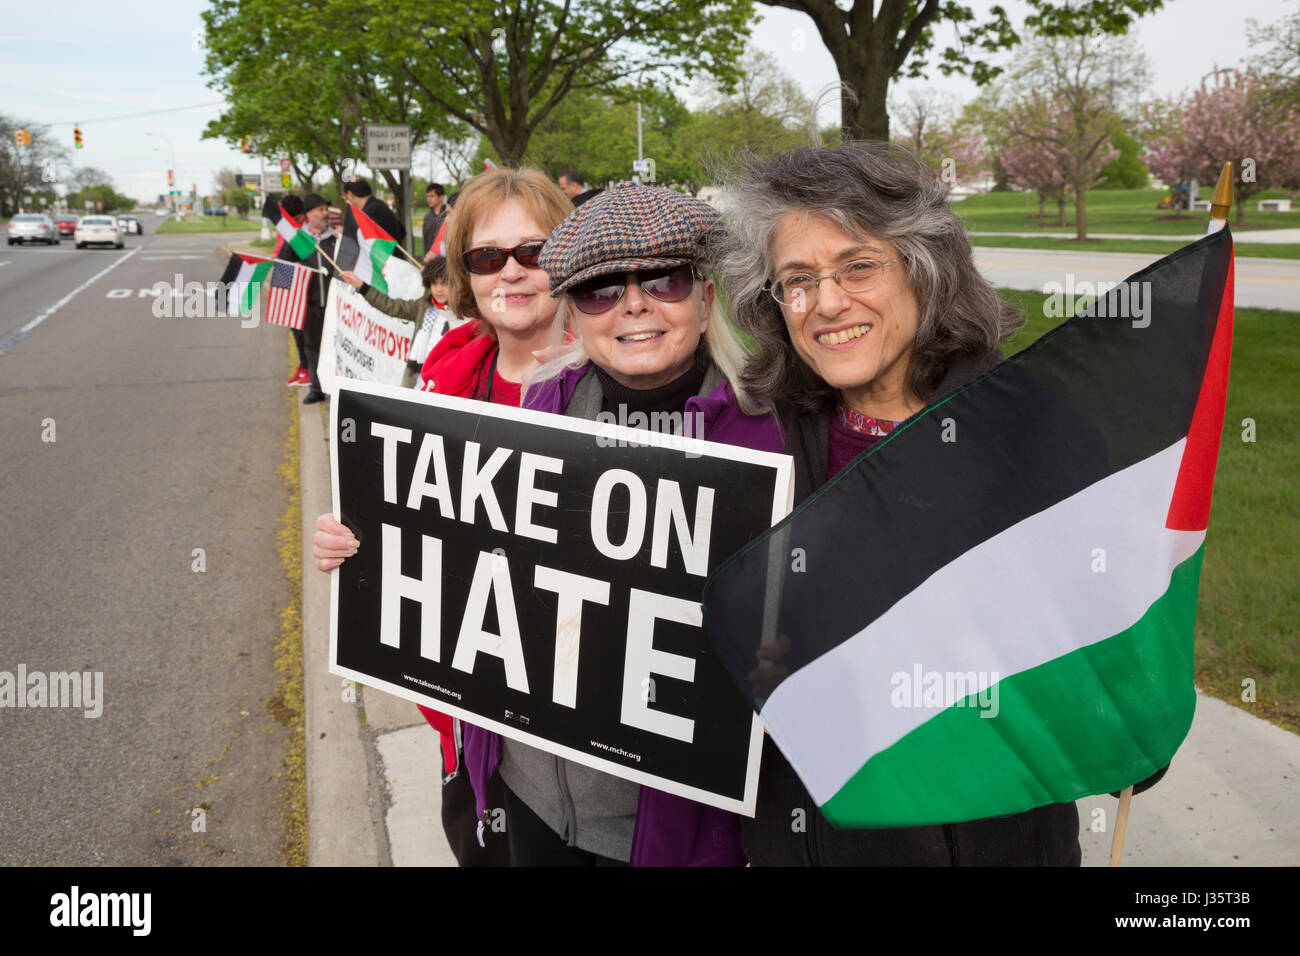 Uk muslims press for peace at 10 downing street - Dearborn Michigan Usa 3rd May 2017 Members Of Jewish Voice For